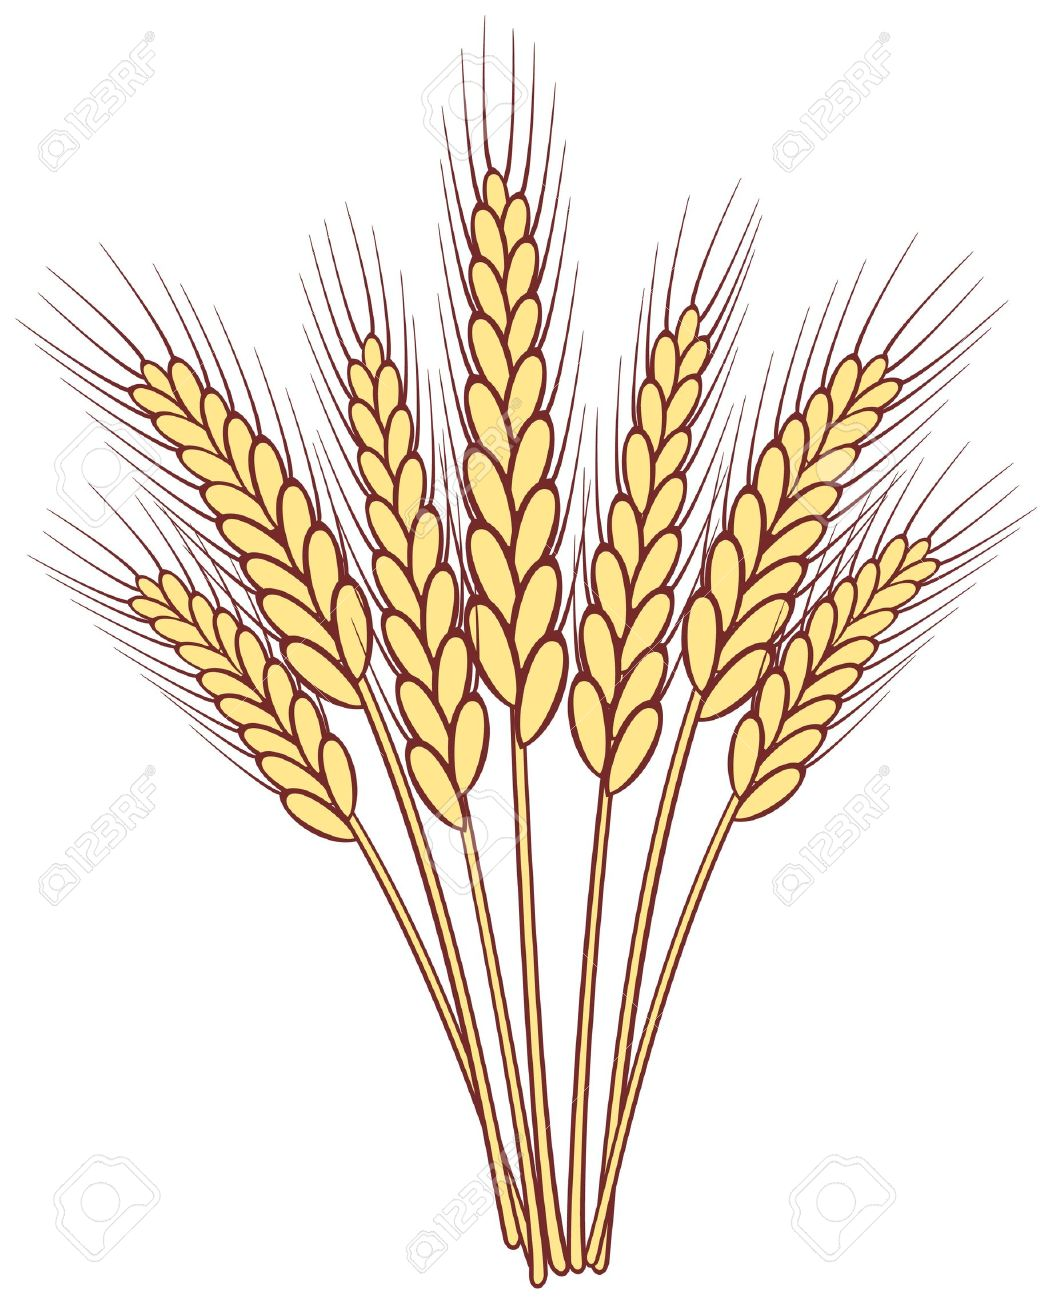 Wheat clipart » Clipart Station.